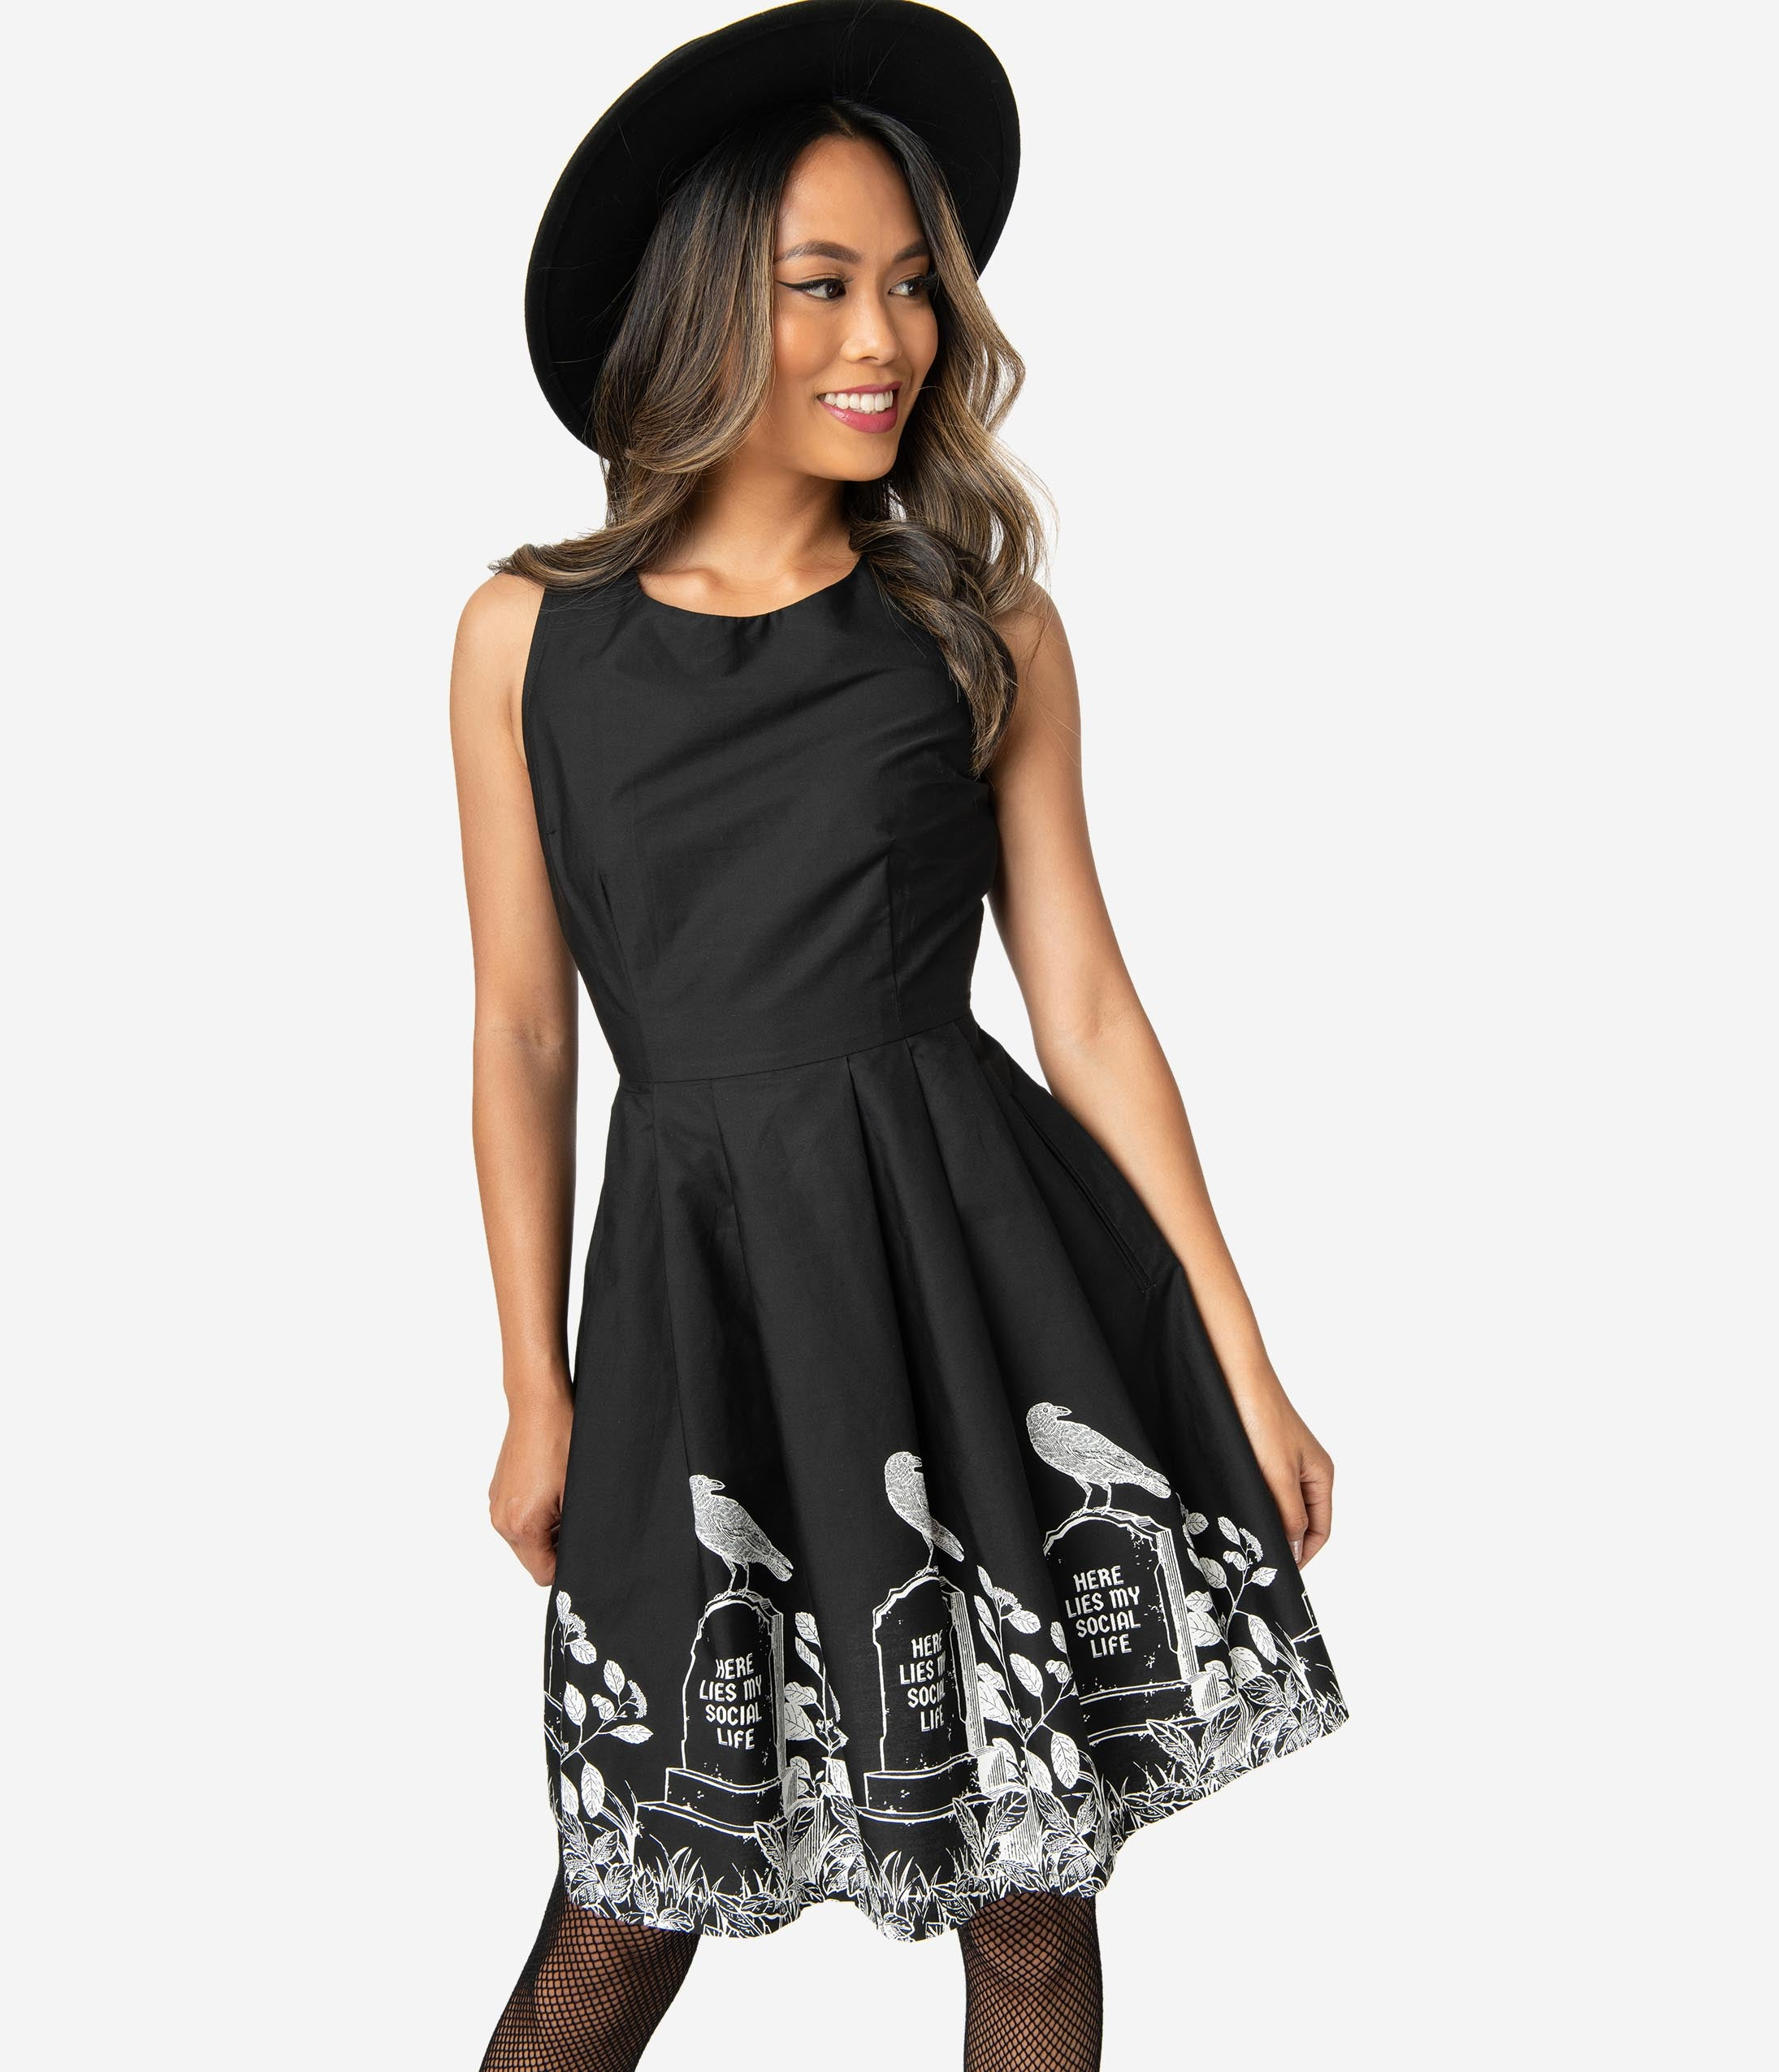 Easy Retro Halloween Costumes – Last Minute Ideas Black Cotton Afterlife Of The Party Sleeveless Fit  Flare Dress $88.00 AT vintagedancer.com